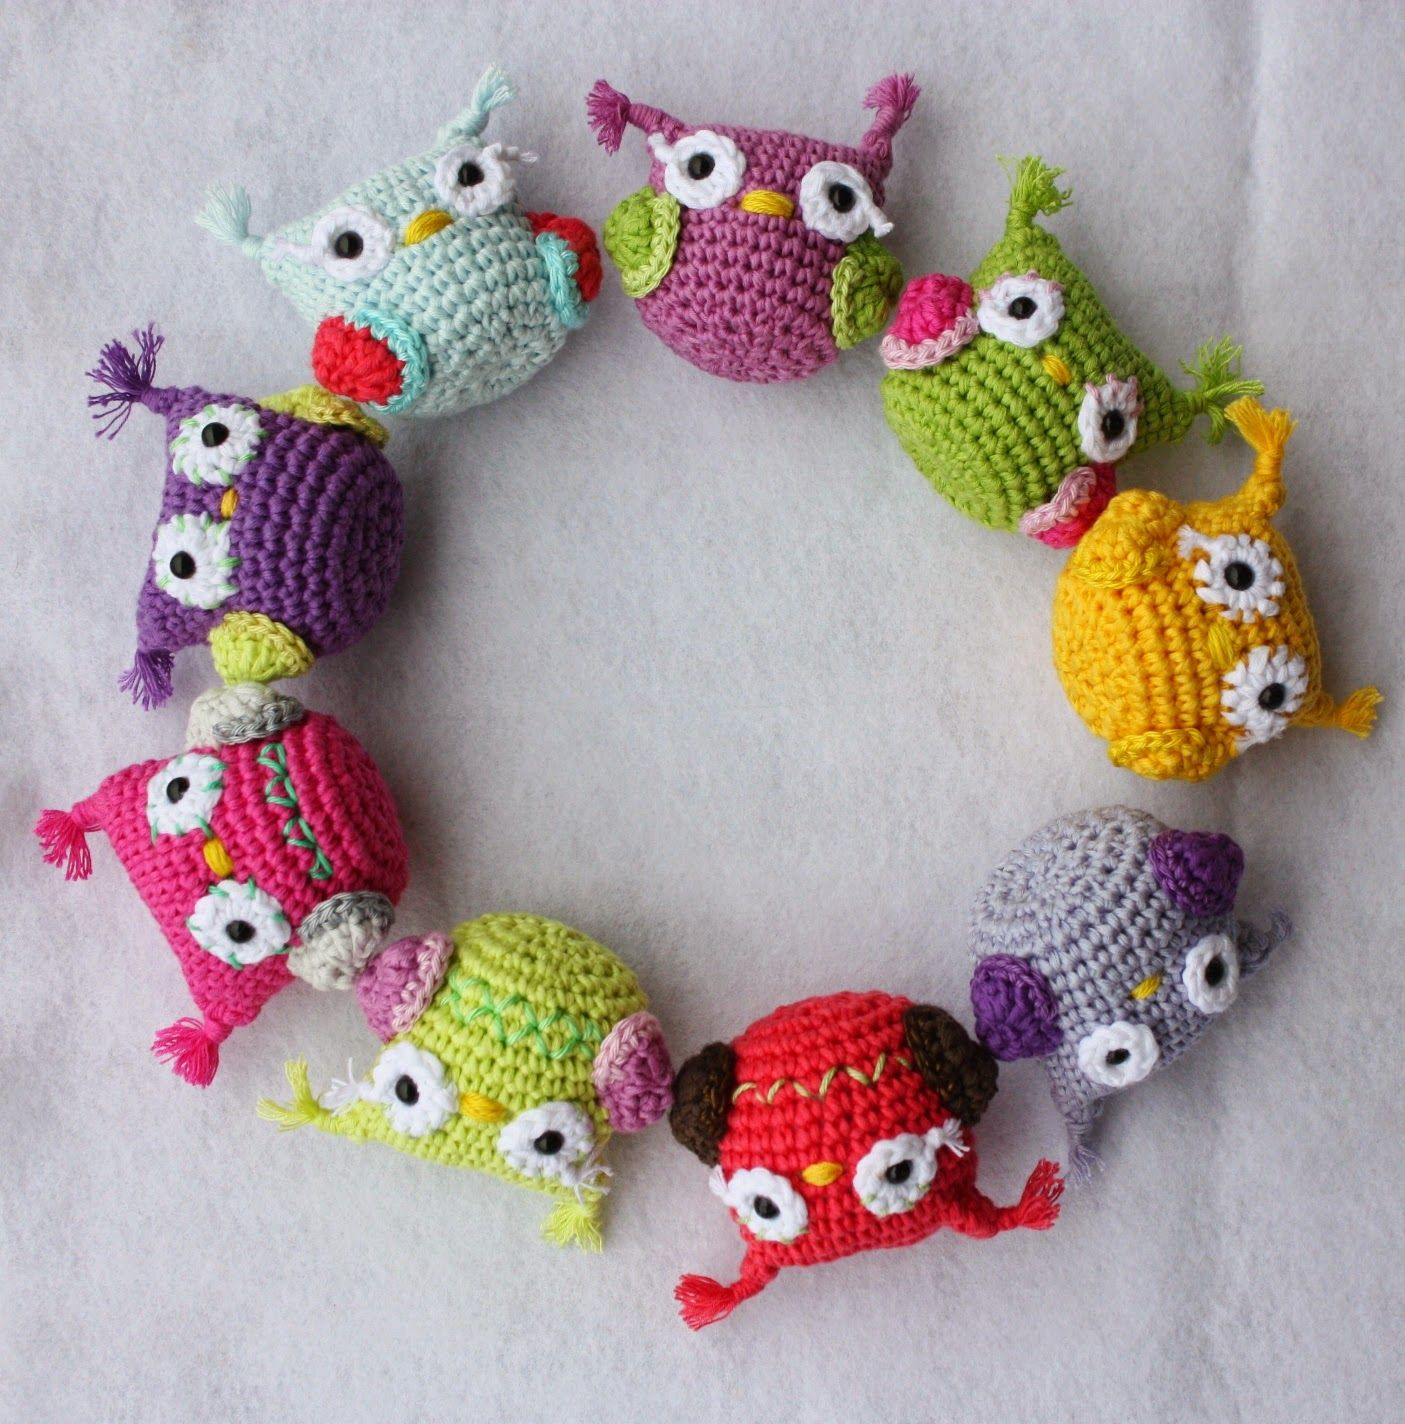 Creations By Laura: Amigurumi Creations By Laura